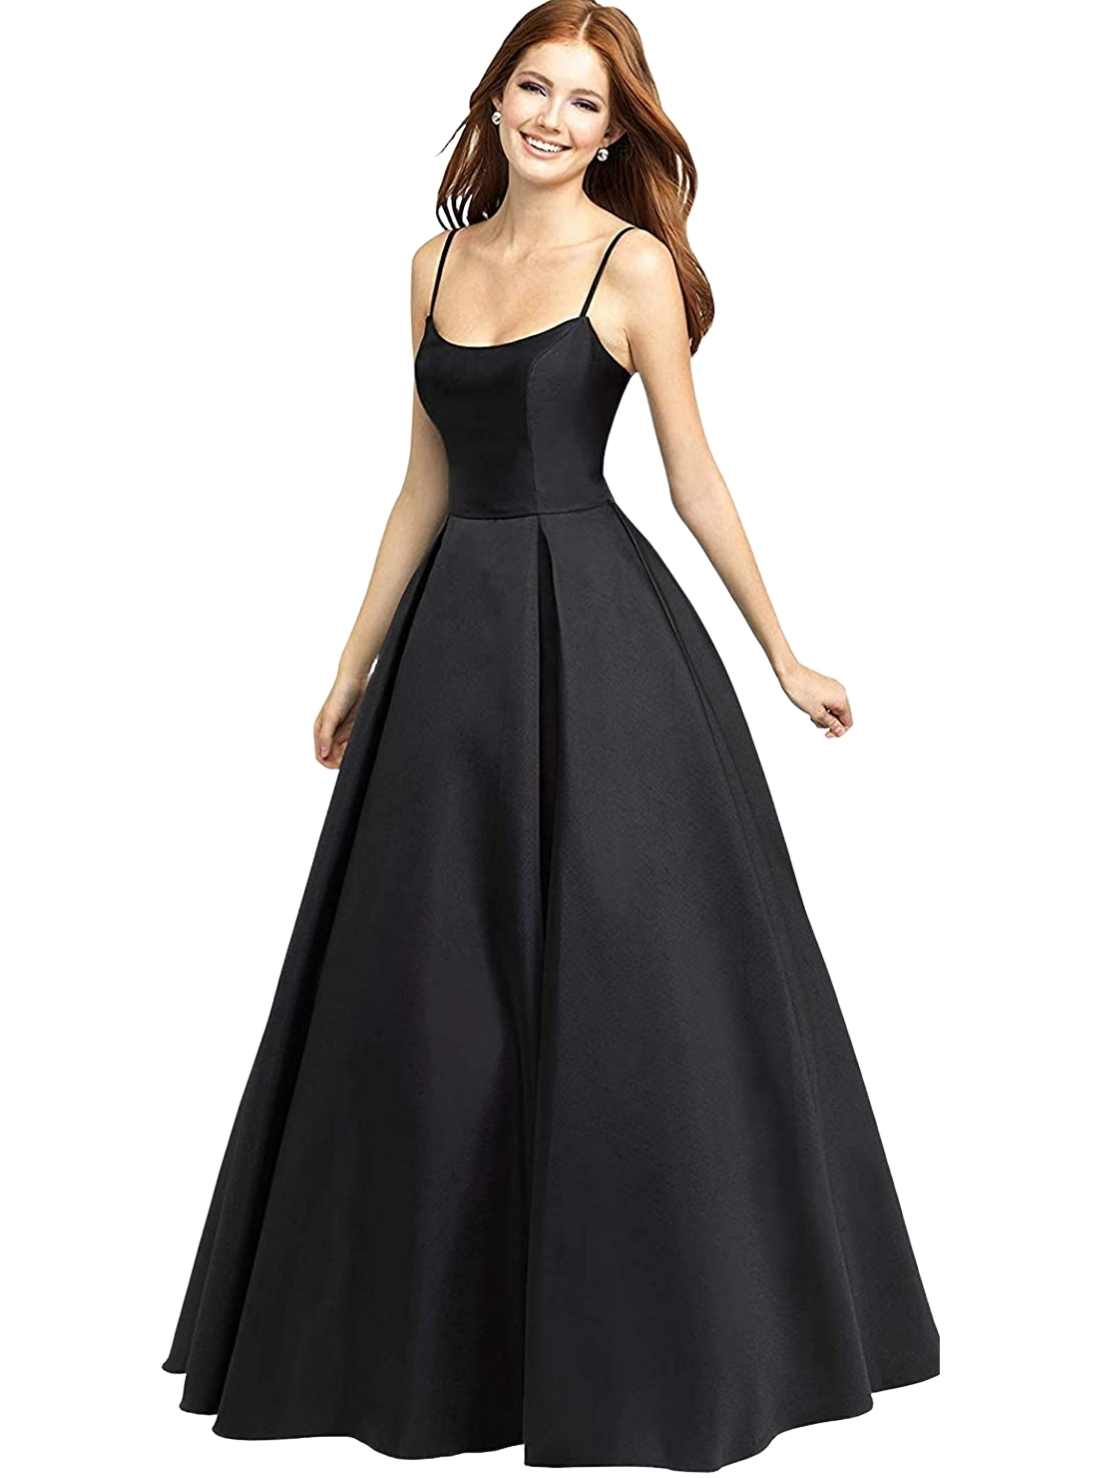 Square Neck Prom Dress Long Satin A-Line Evening Party Formal Ball Gown Two Pockets